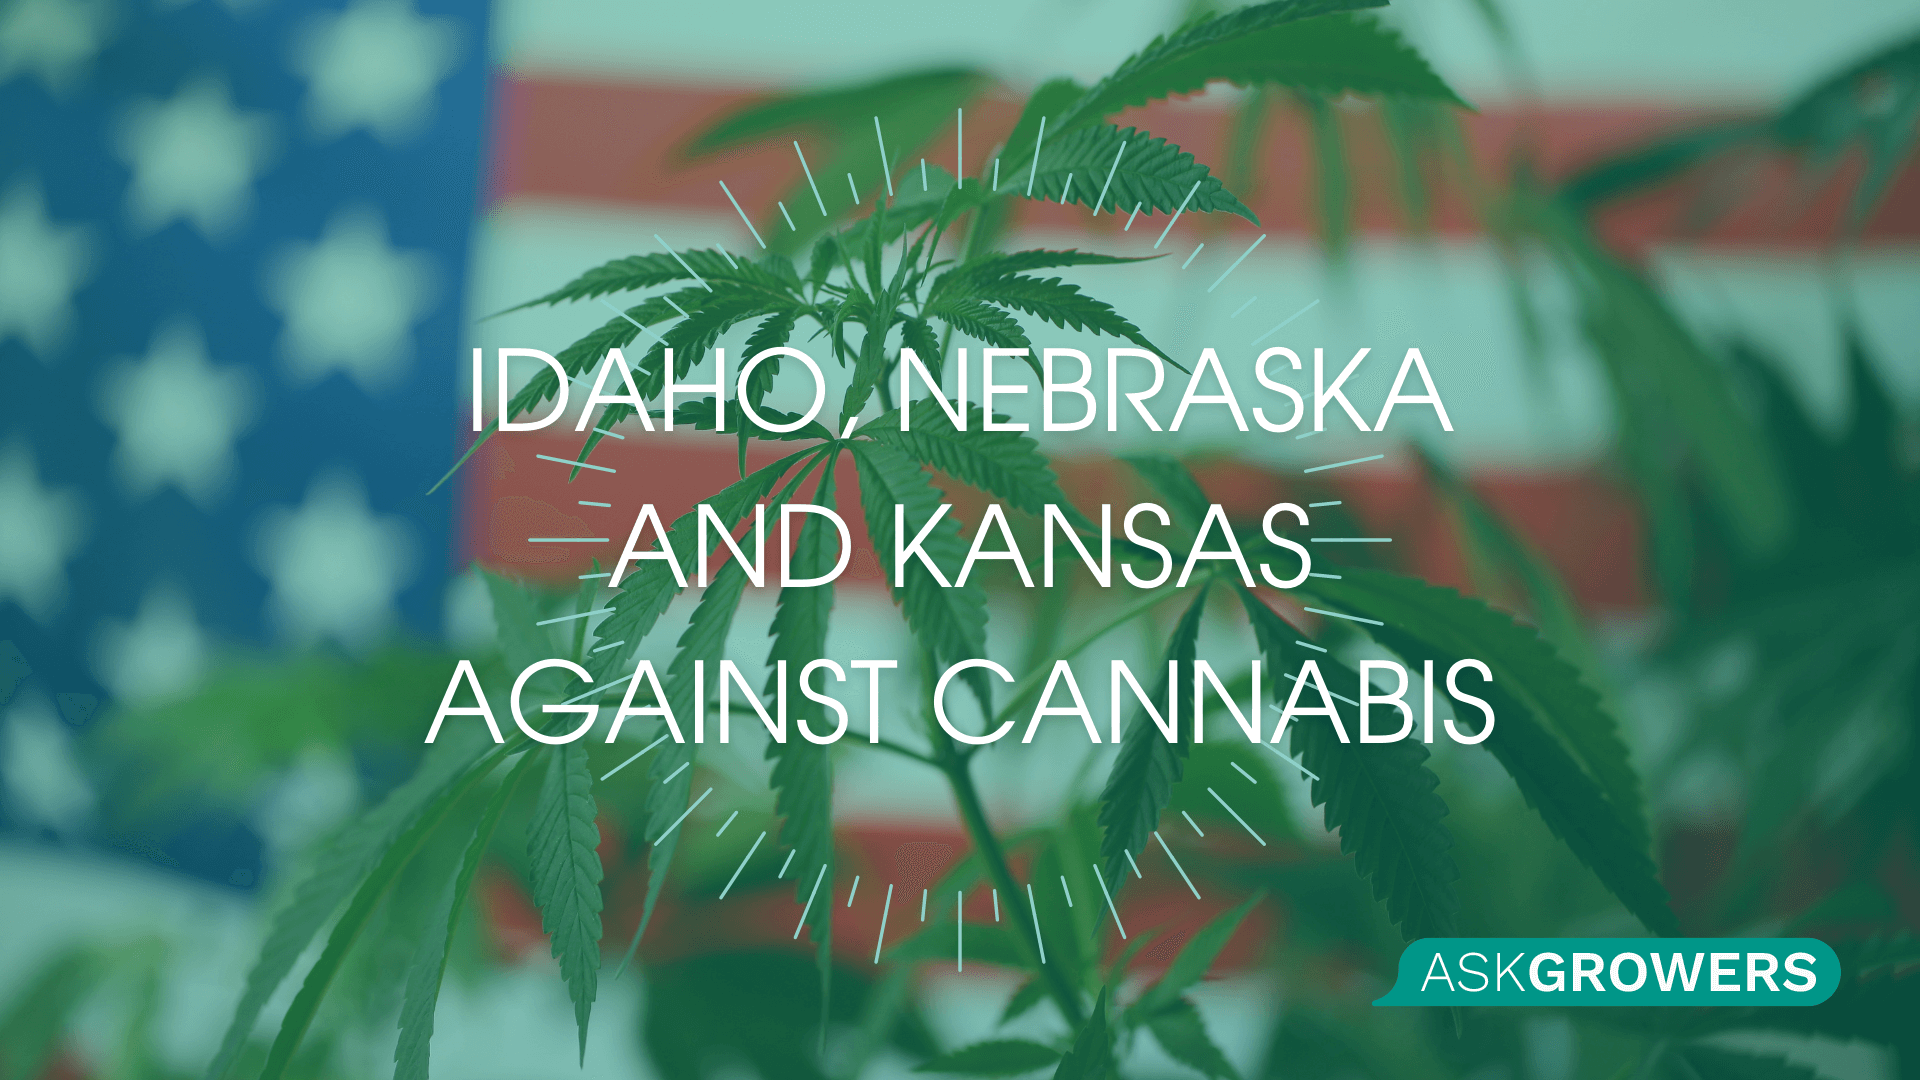 Why Idaho, Nebraska, and Kansas Are Strongly Opposed to Cannabis?, AskGrowers